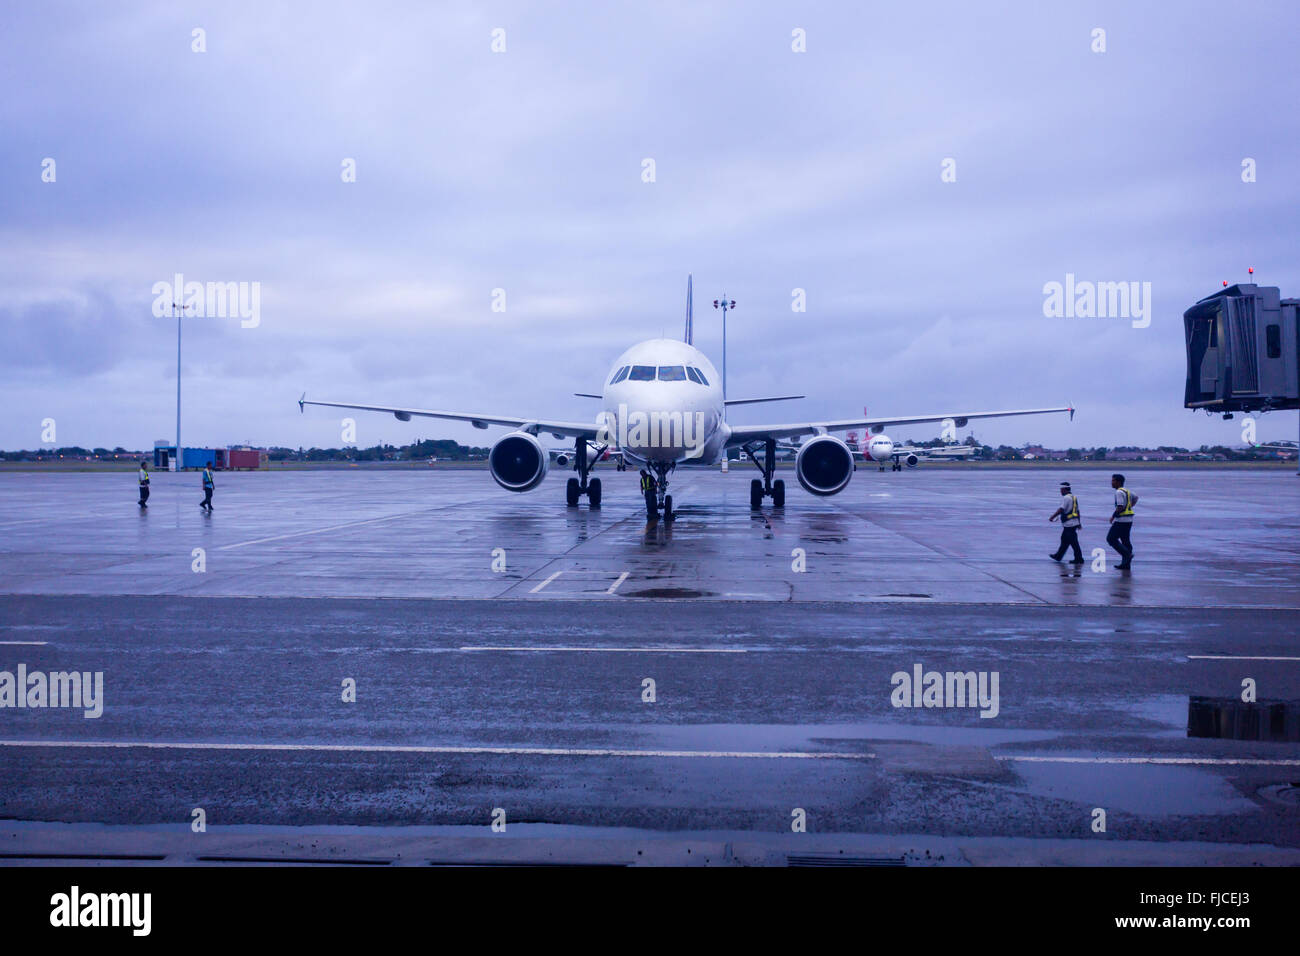 Close-up of  jet airplane at gate of airport - Stock Image